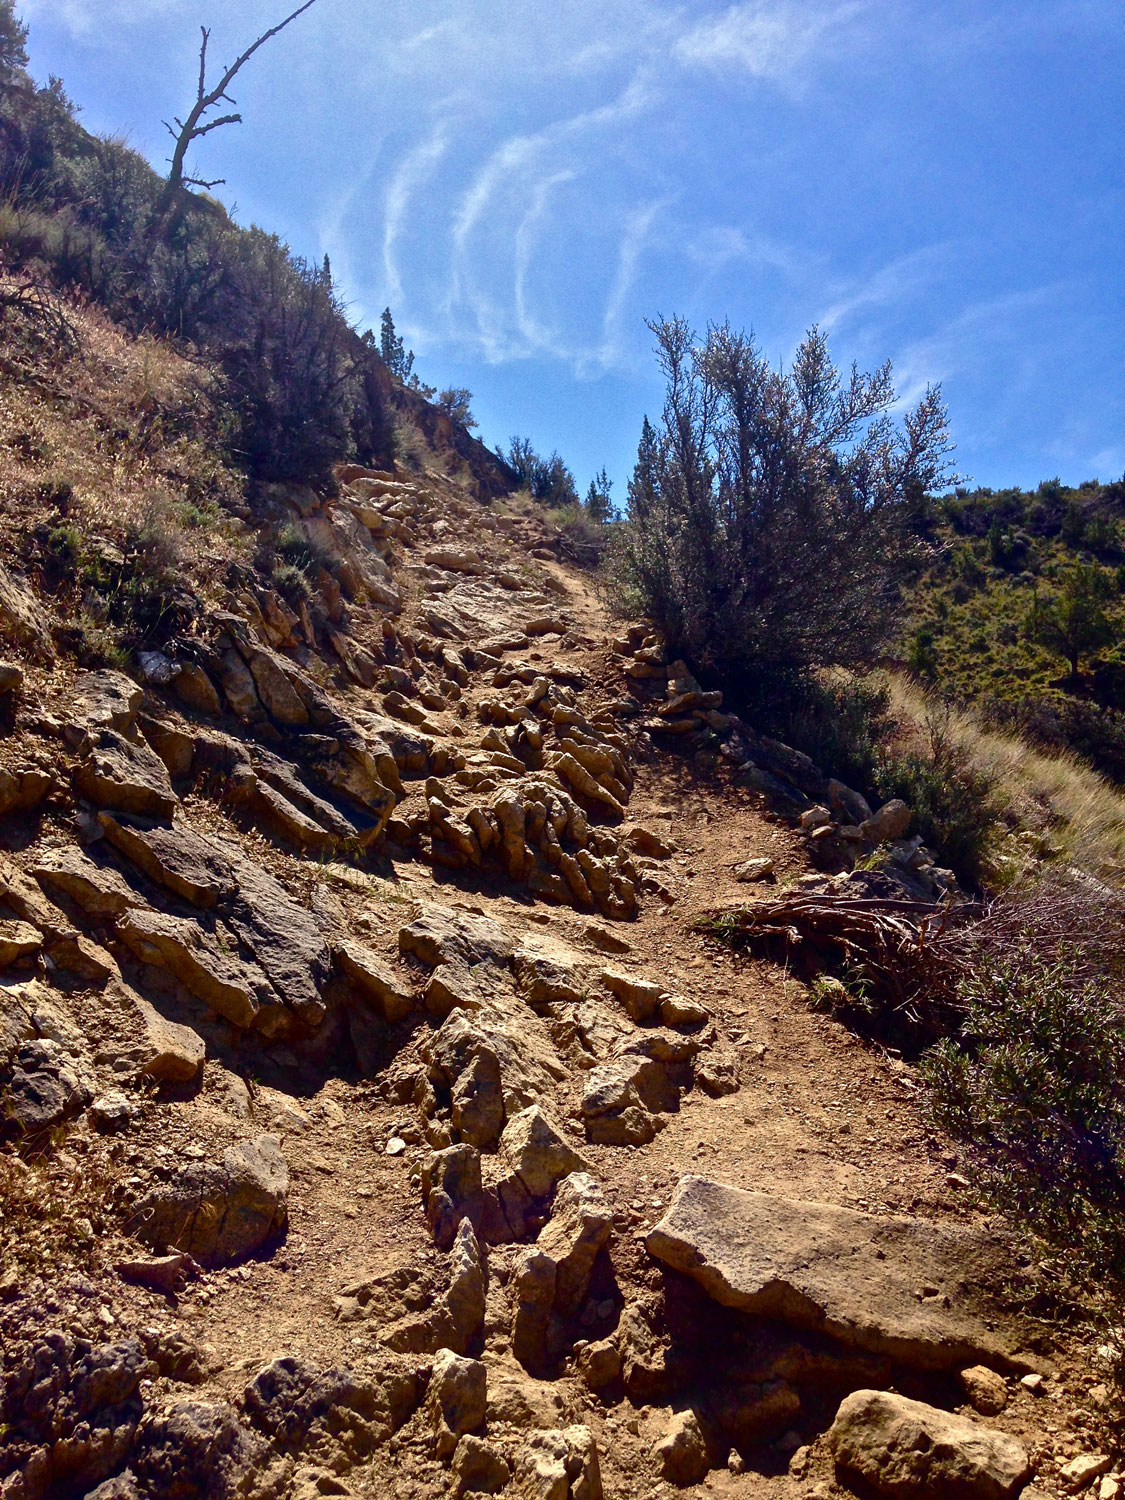 The Burma Road Trail in Smith Rock State Park can present some interesting obstacles for mountain bikers.